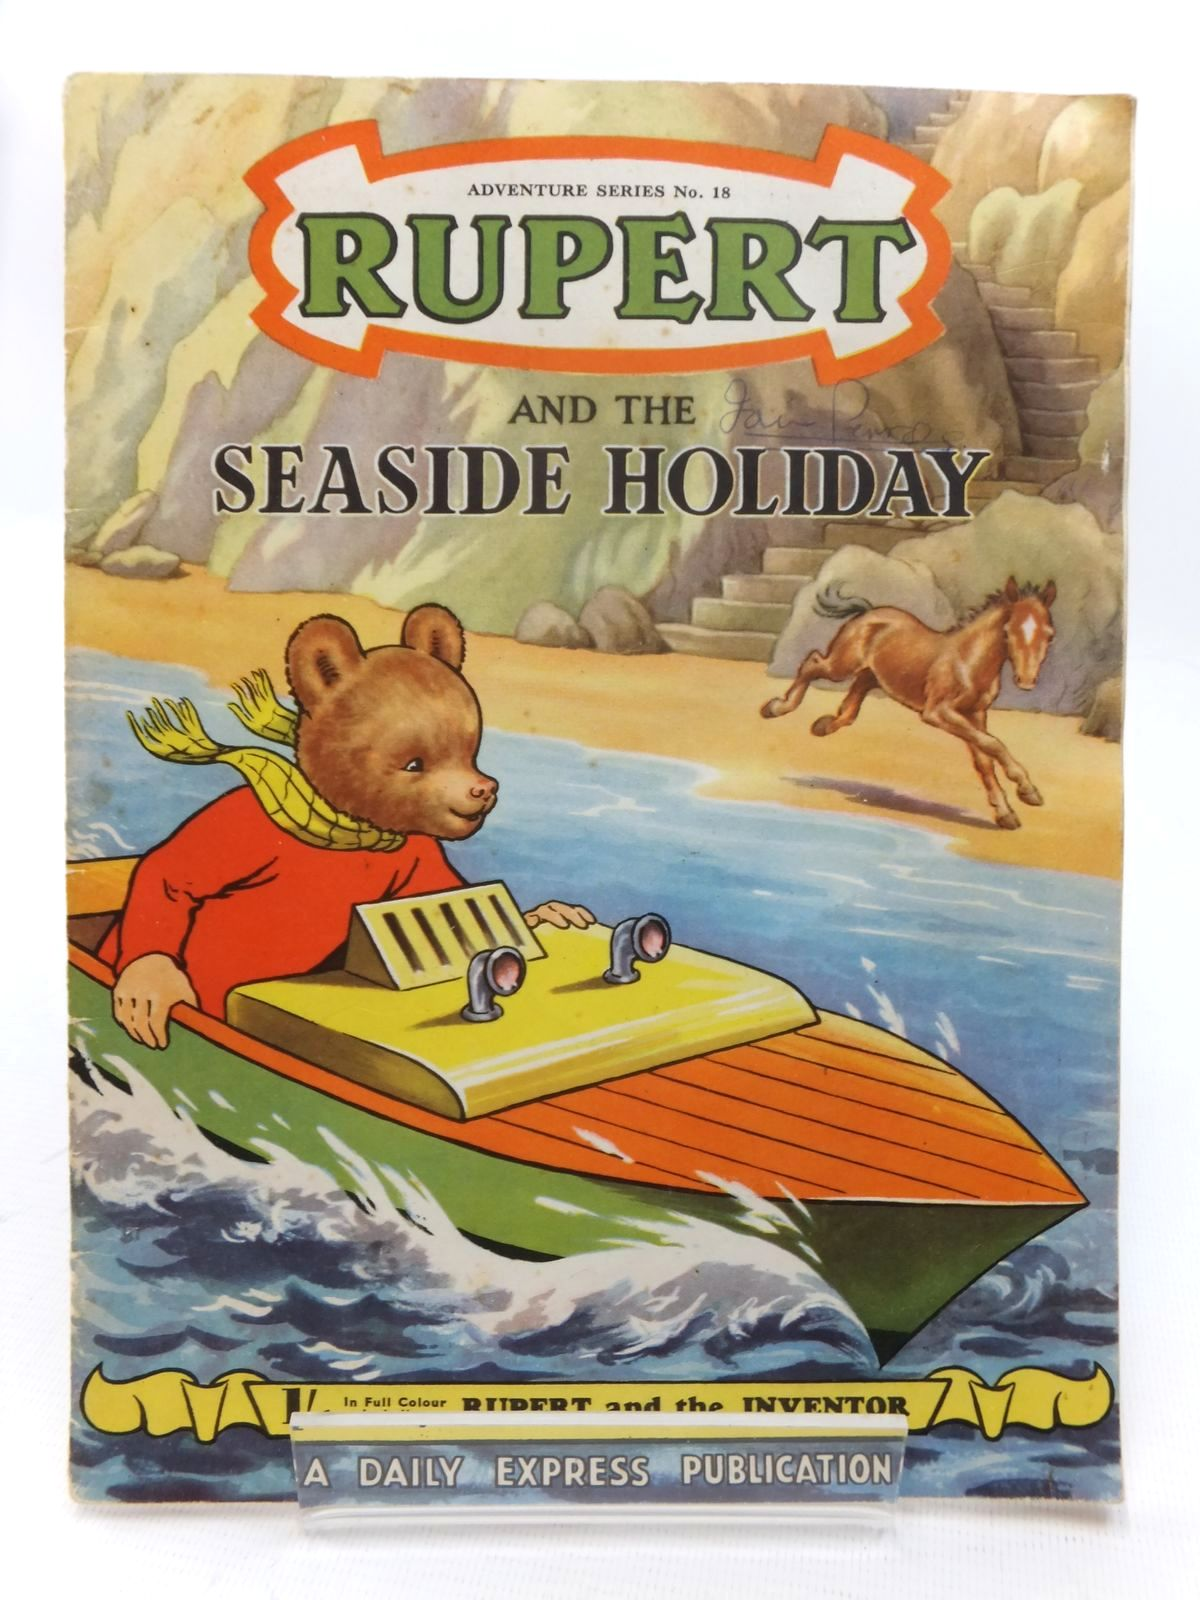 Rupert Adventure Series No. 18 - Rupert And The Seaside Holiday